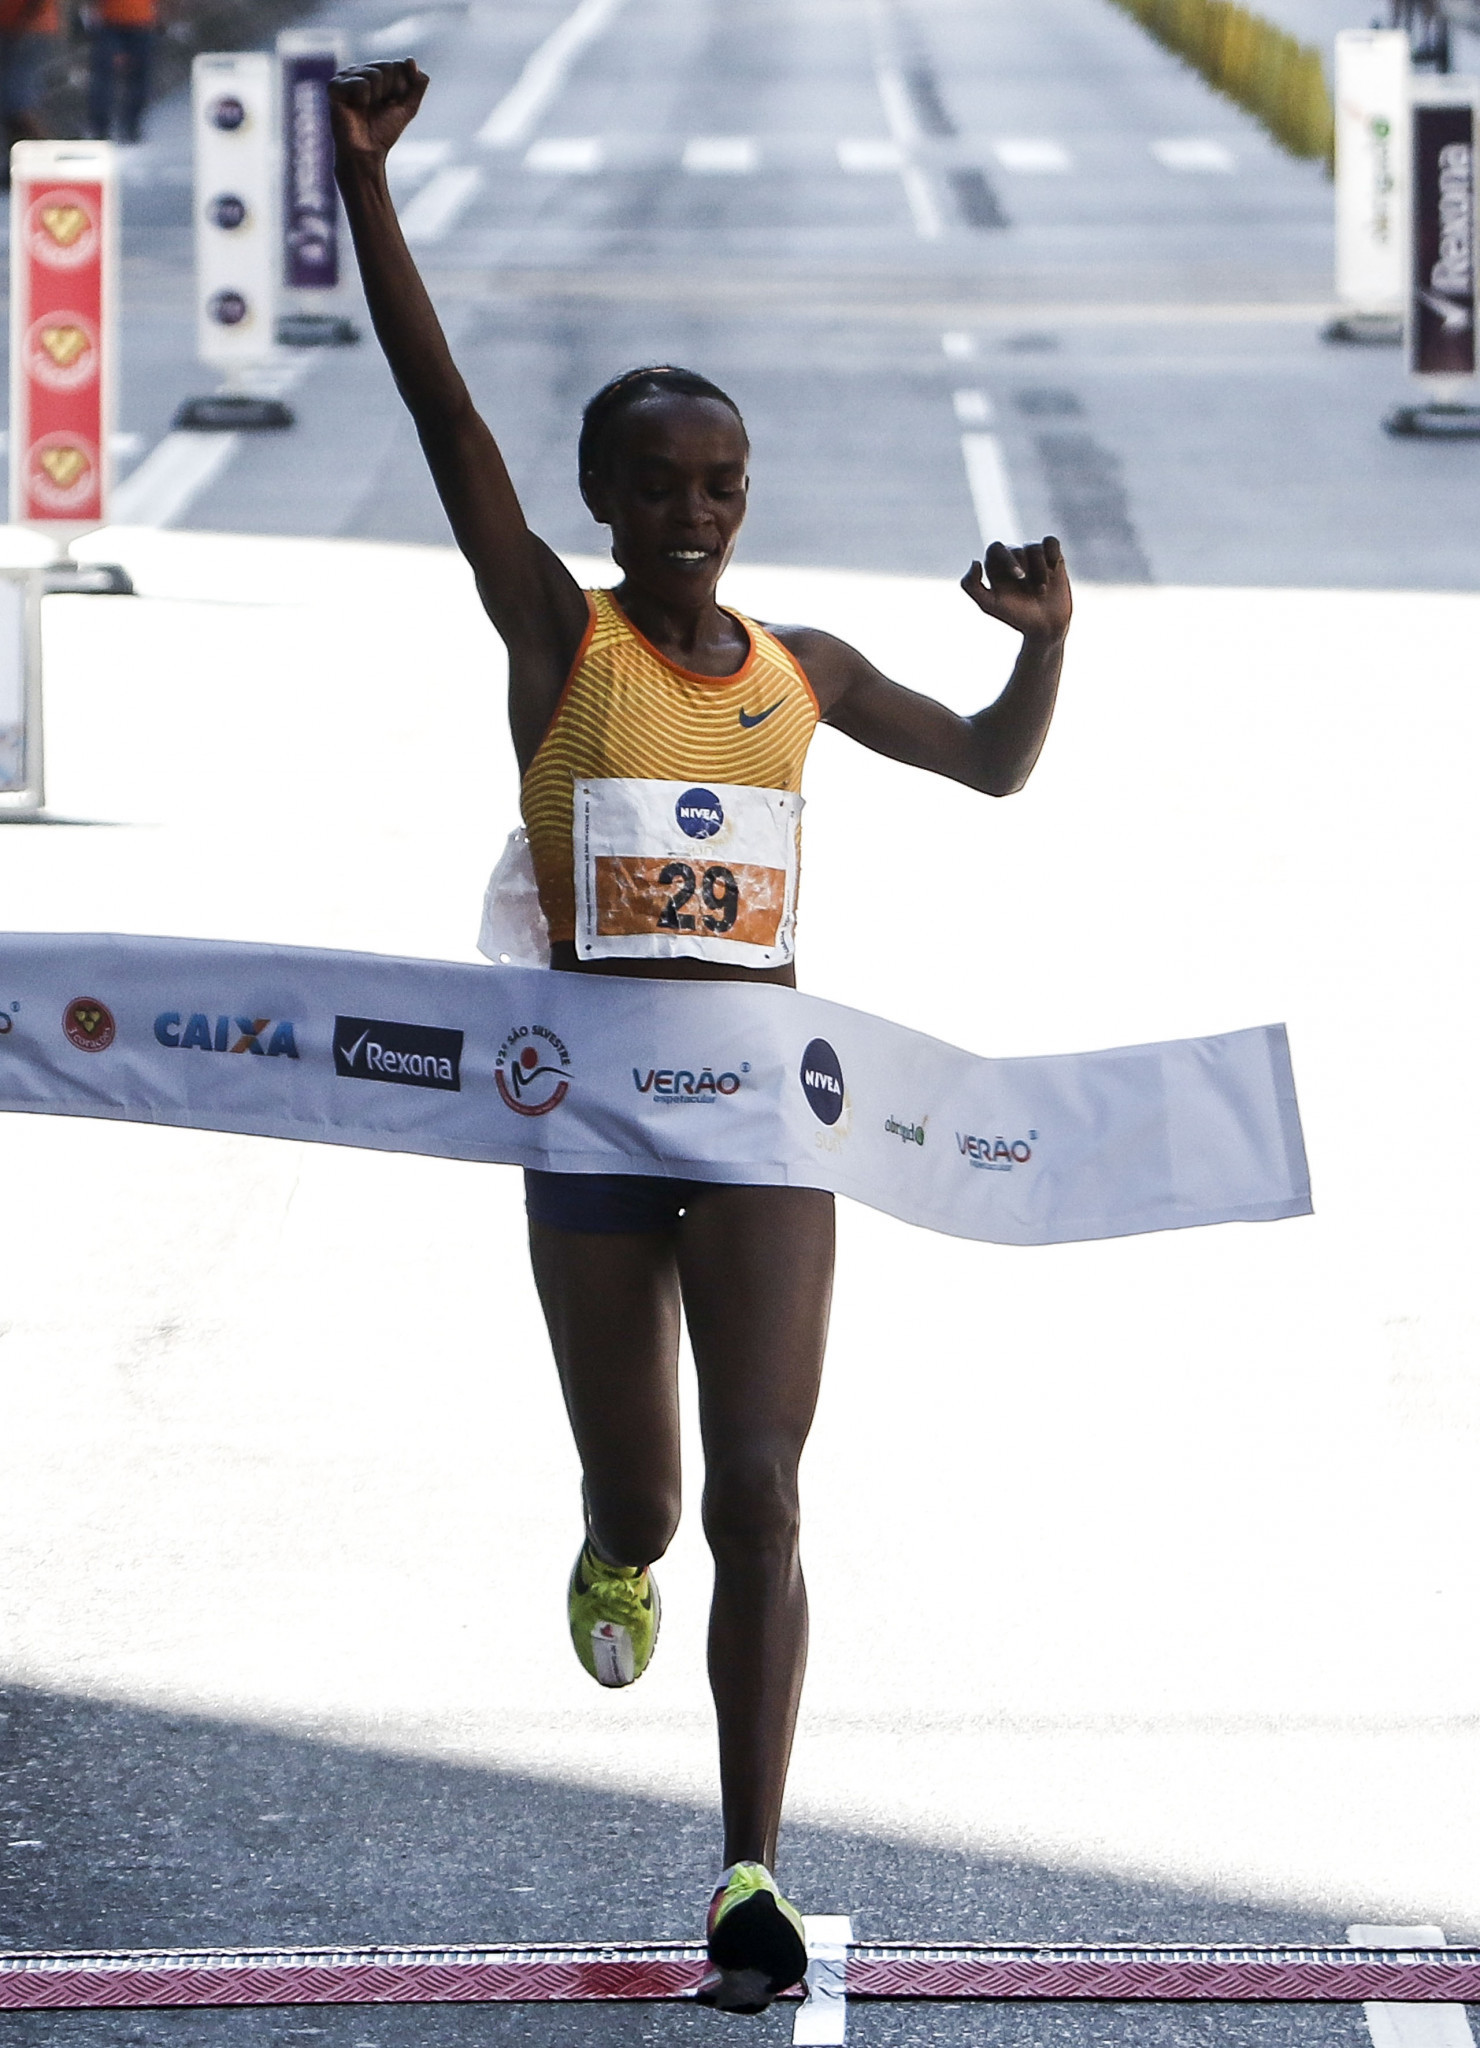 Jemima Sumgong lost the title after her doping ban ©Getty Images